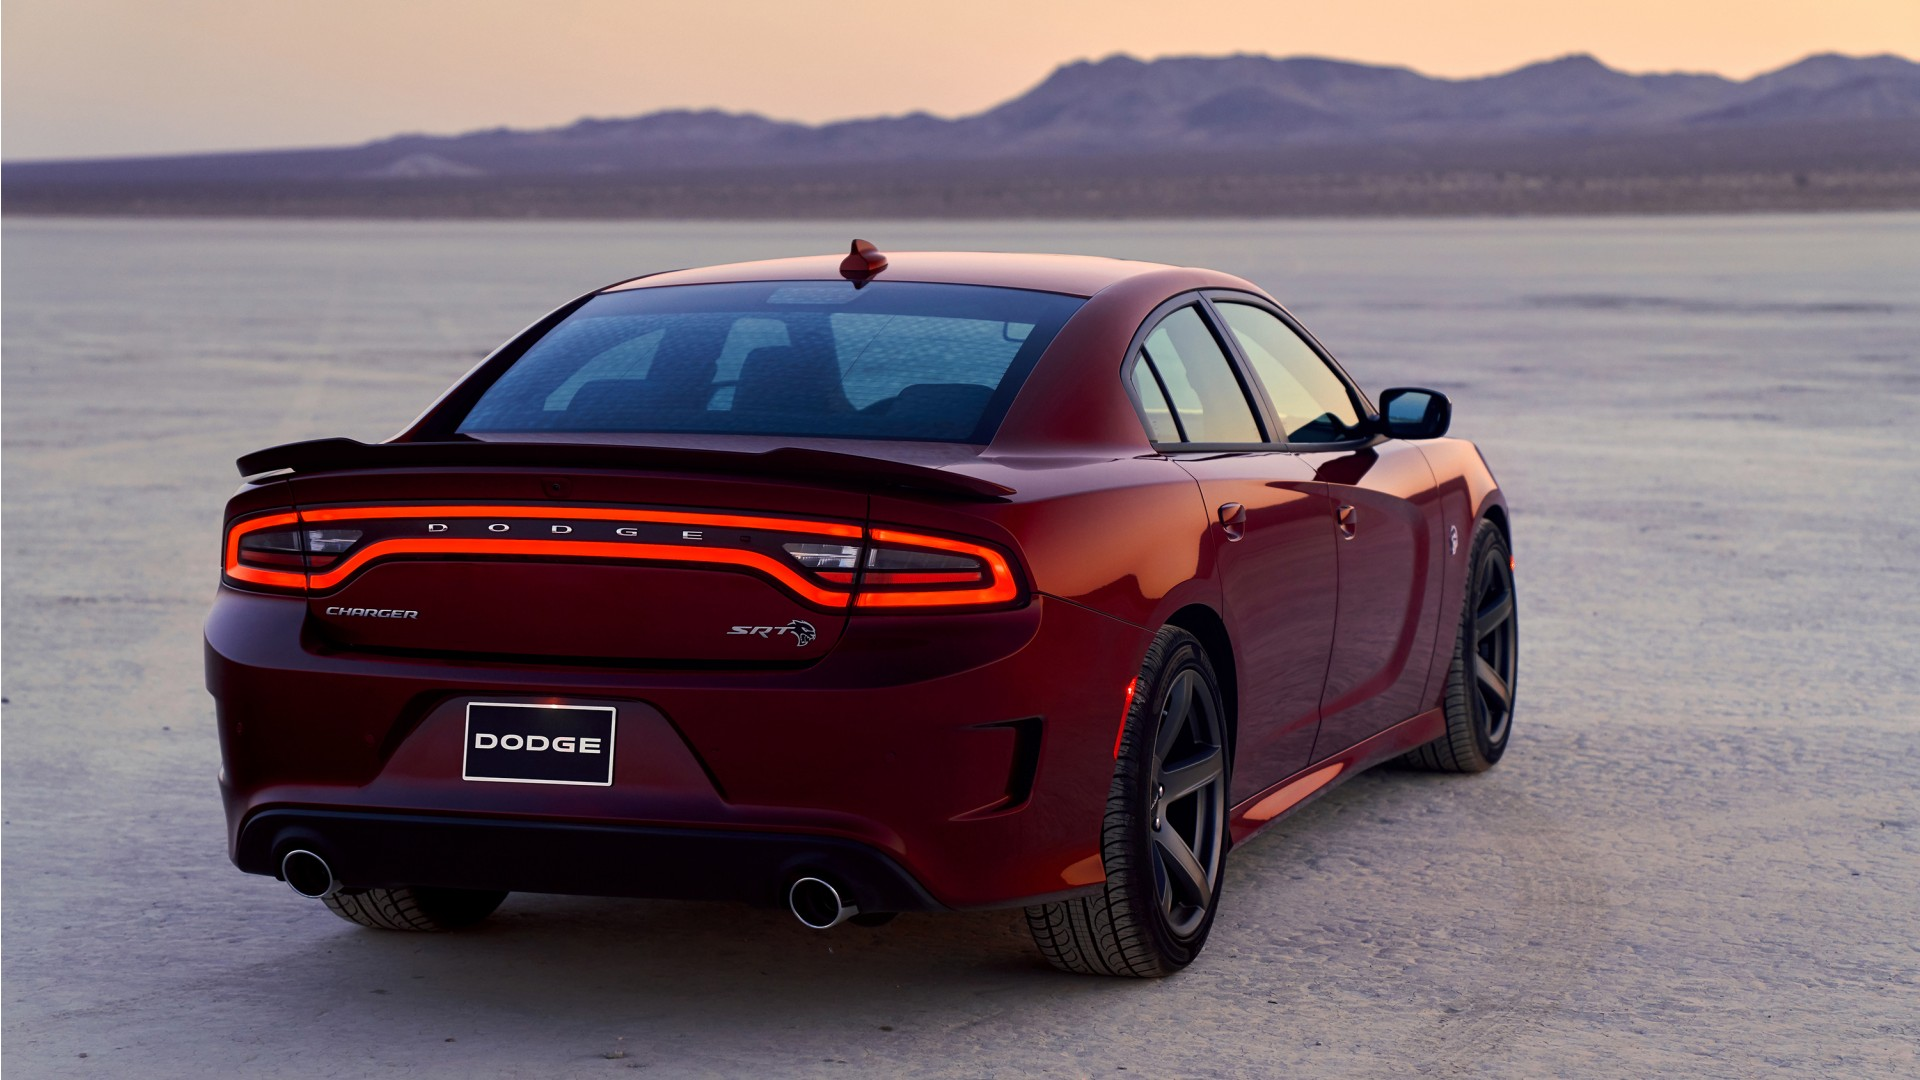 Charger Srt Hellcat >> 2019 Dodge Charger SRT Hellcat 2 Wallpaper | HD Car ...